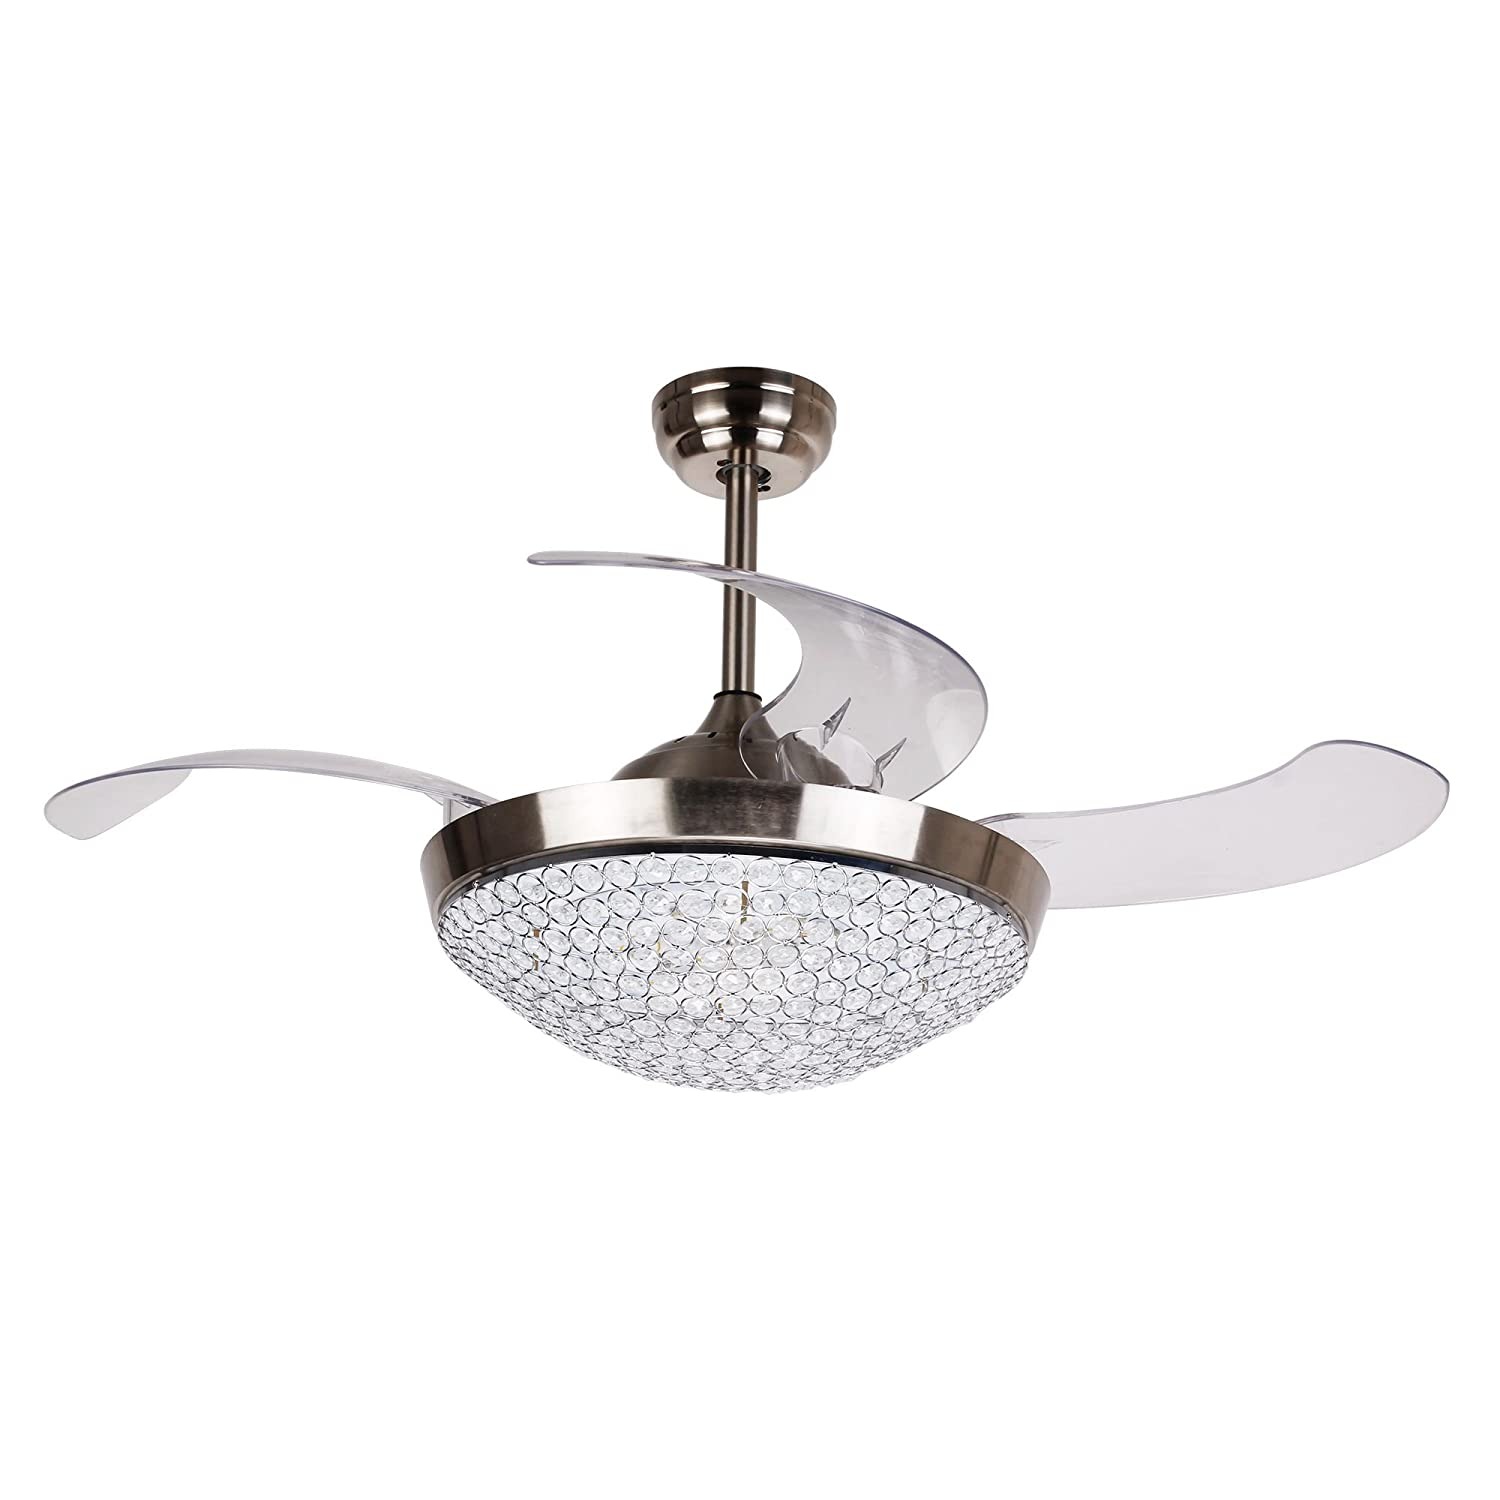 Hunter Indoor Ceiling Fan with light and pull chain control – Builder Deluxe 52 inch, New Bronze, 53091